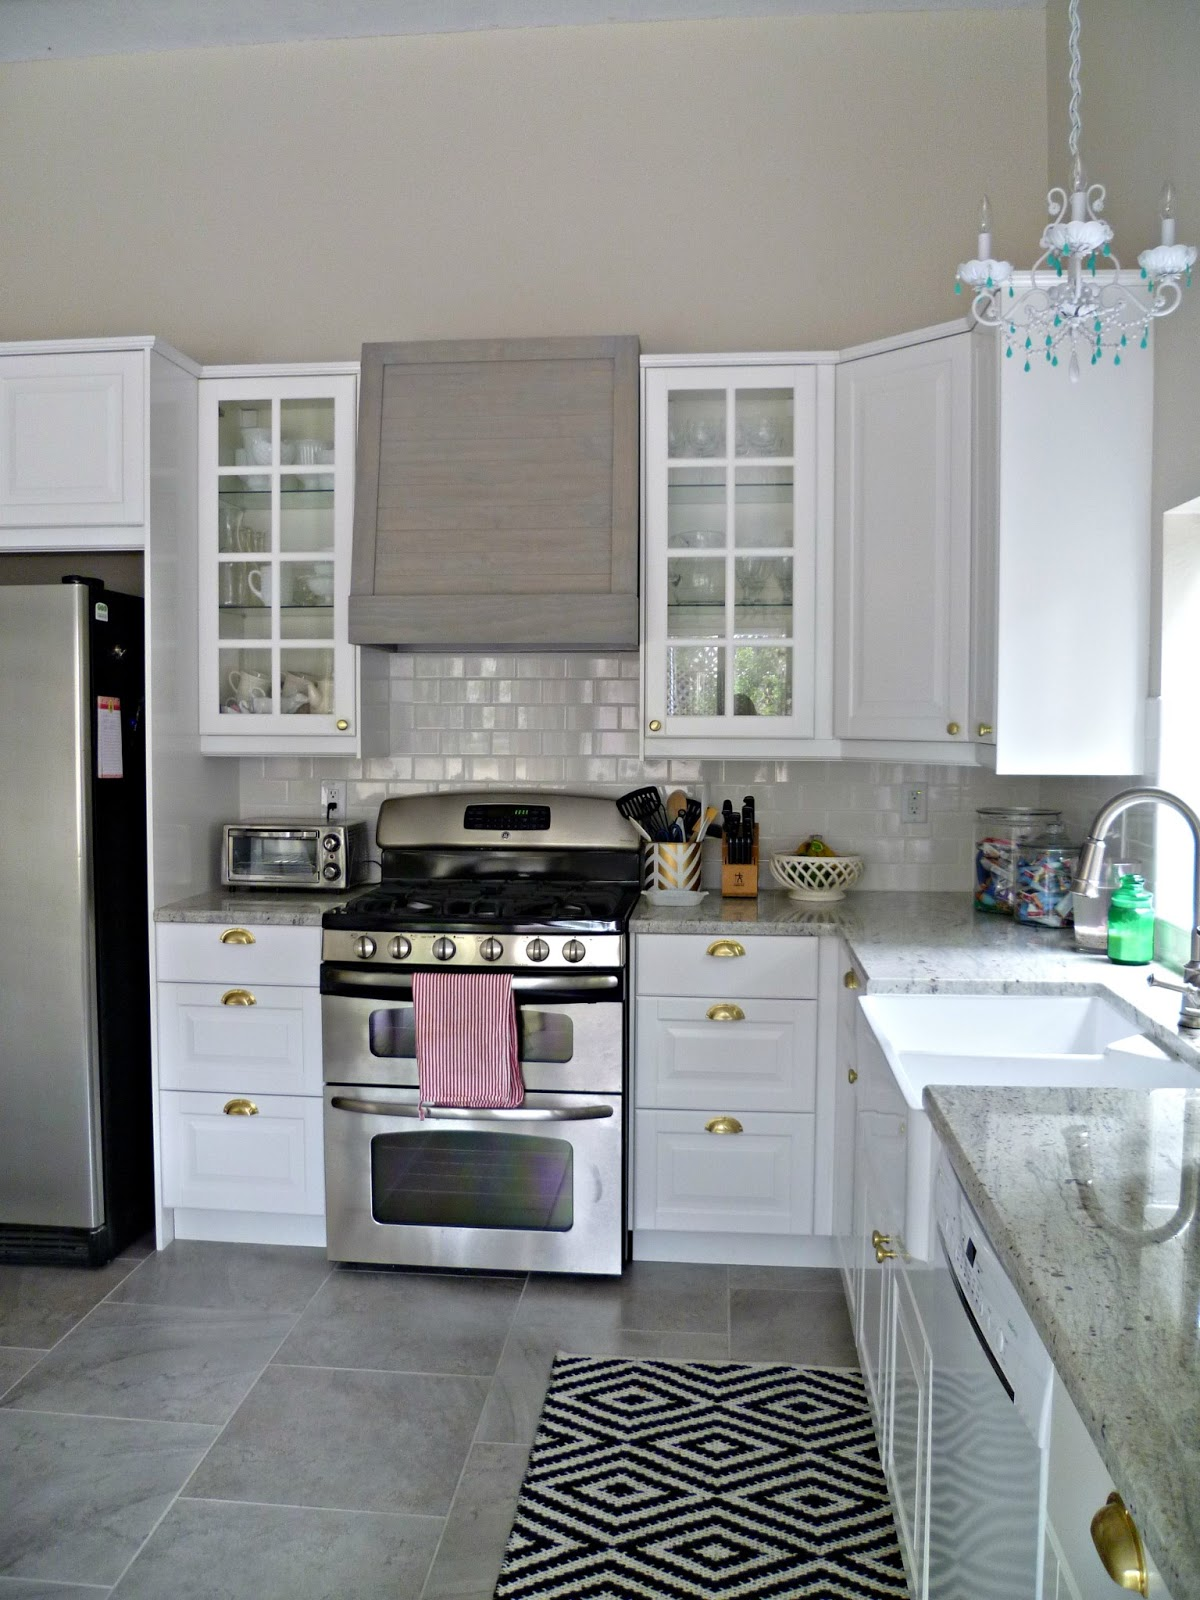 My third true love my new kitchen the reveal for What kind of paint to use on kitchen cabinets for teddy bear wall art